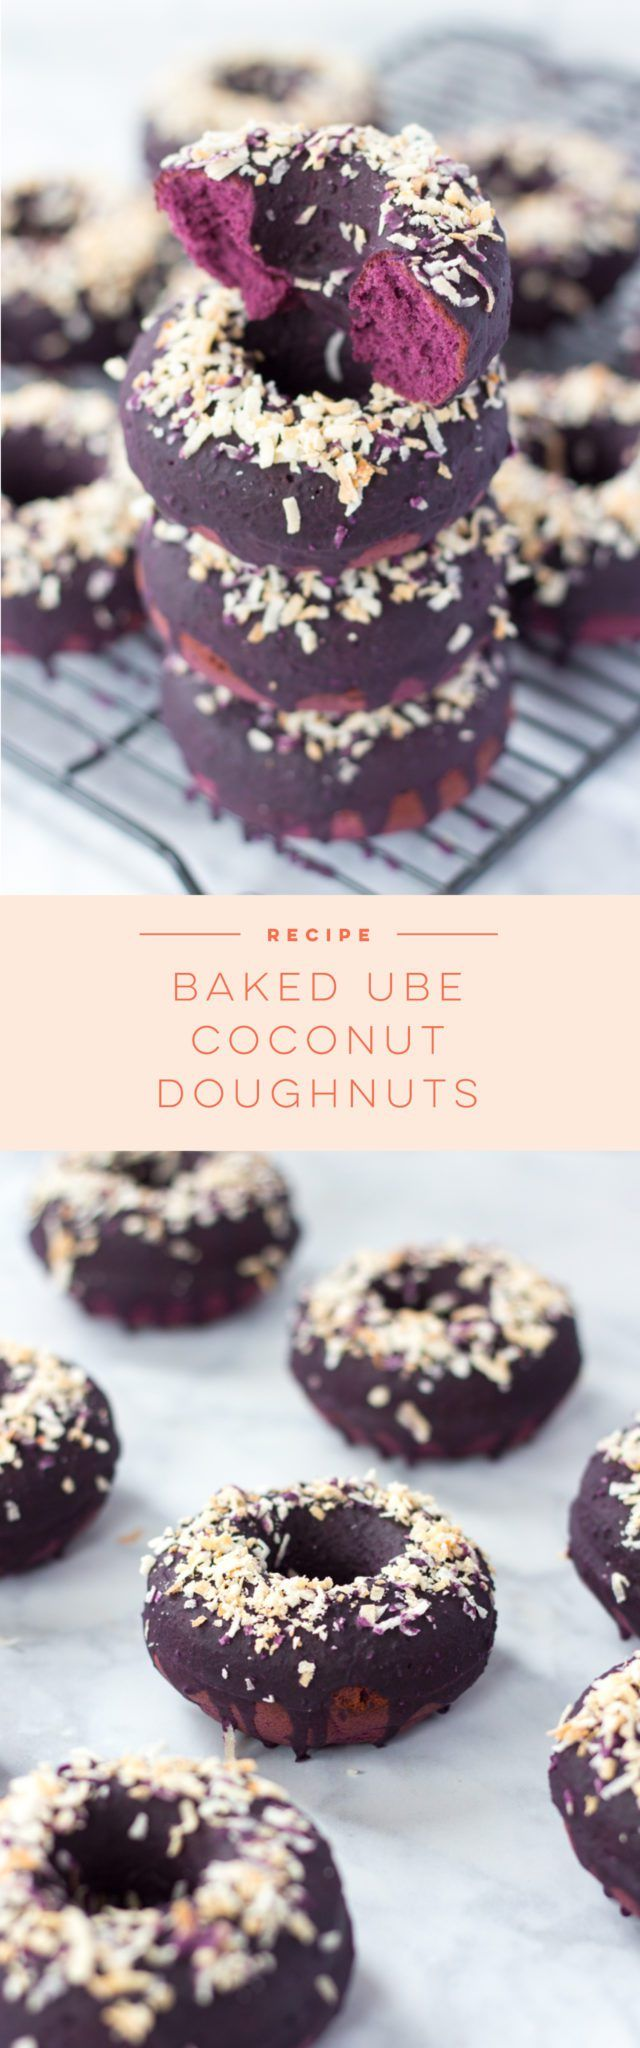 An easy recipe for easy and flavorful baked Ube Coconut Doughnuts. These naturally purple treats are perfect morning treats.